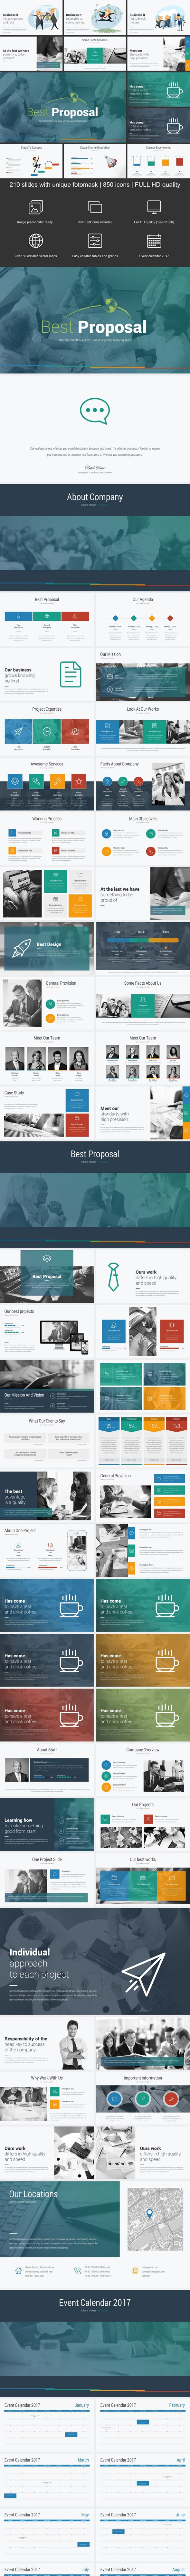 proposal powerpoint template by evgenybagro graphicriver